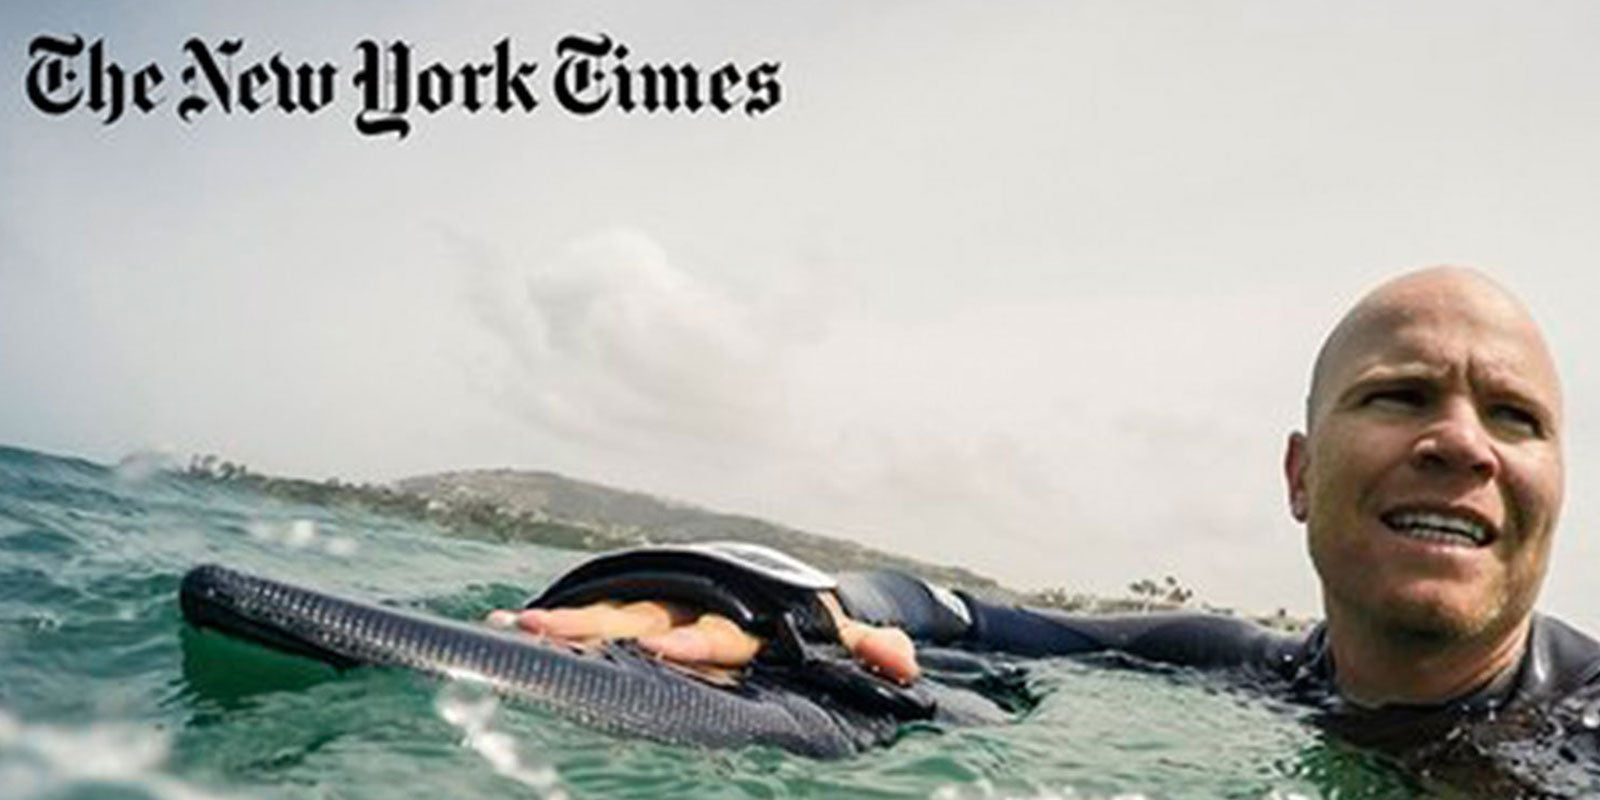 The New York Times: Features Slyde Handboards In Entrepreneurship News